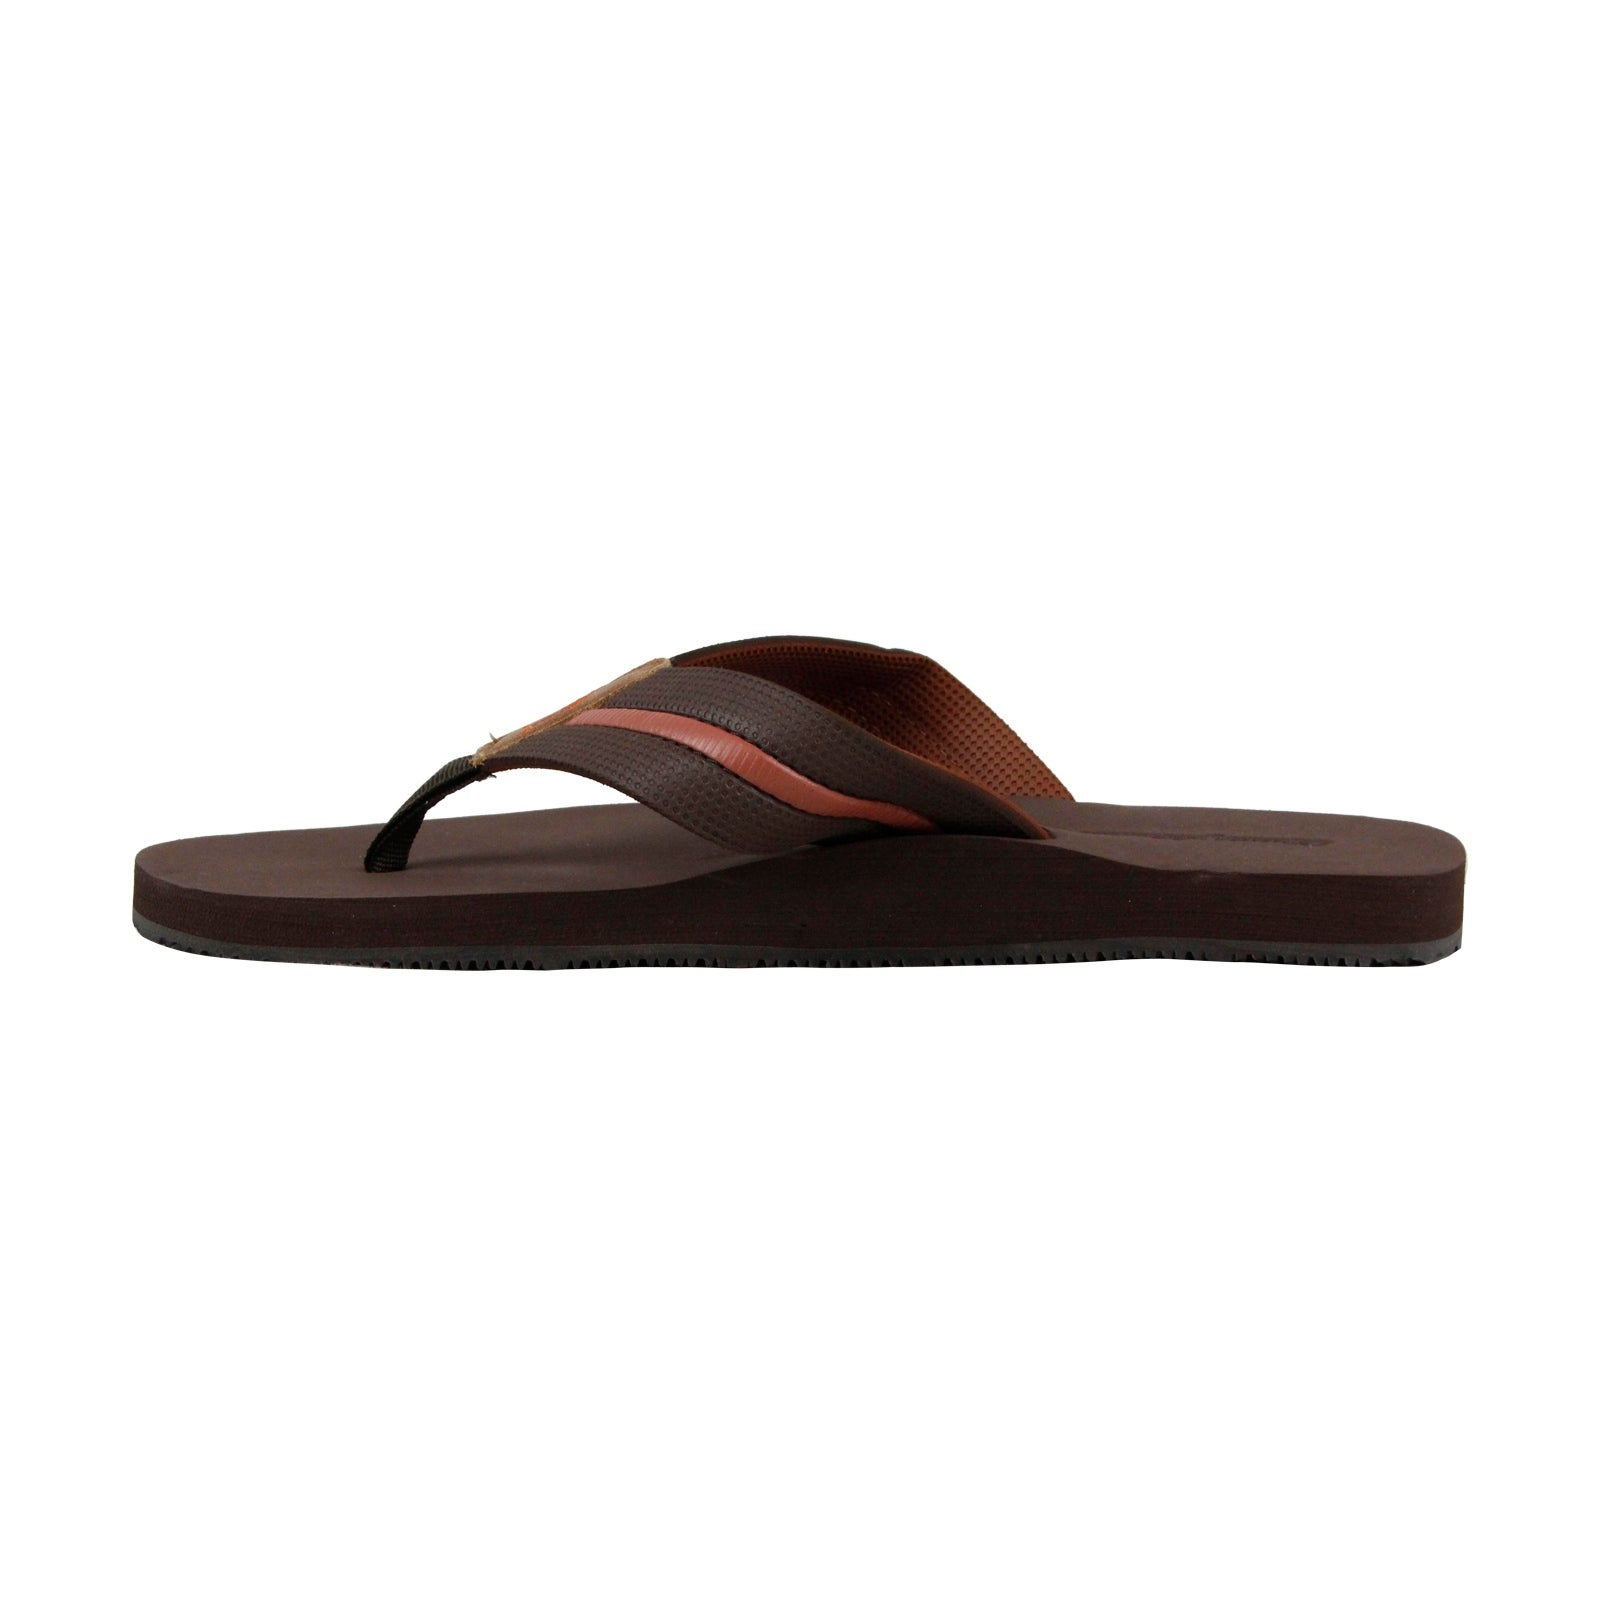 6d2625dc22996 Shop Tommy Bahama Taheeti Mens Brown Leather Flip Flops Slip On Sandals  Shoes - Free Shipping Today - Overstock.com - 23091876